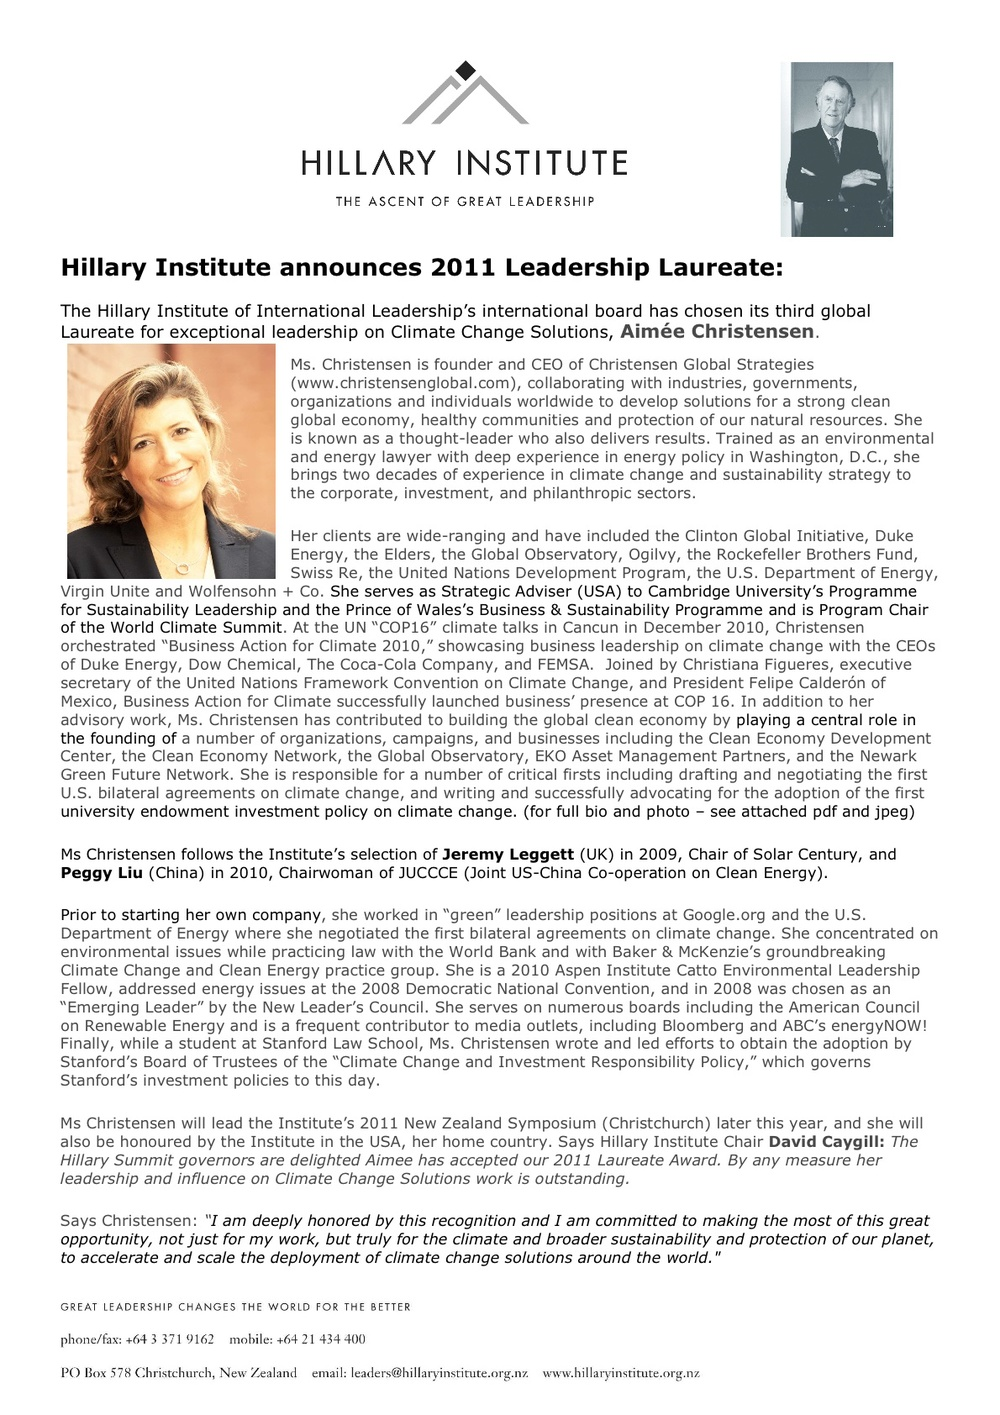 Hillary Institute Global Laureate Press Release - 2011 final.jpg